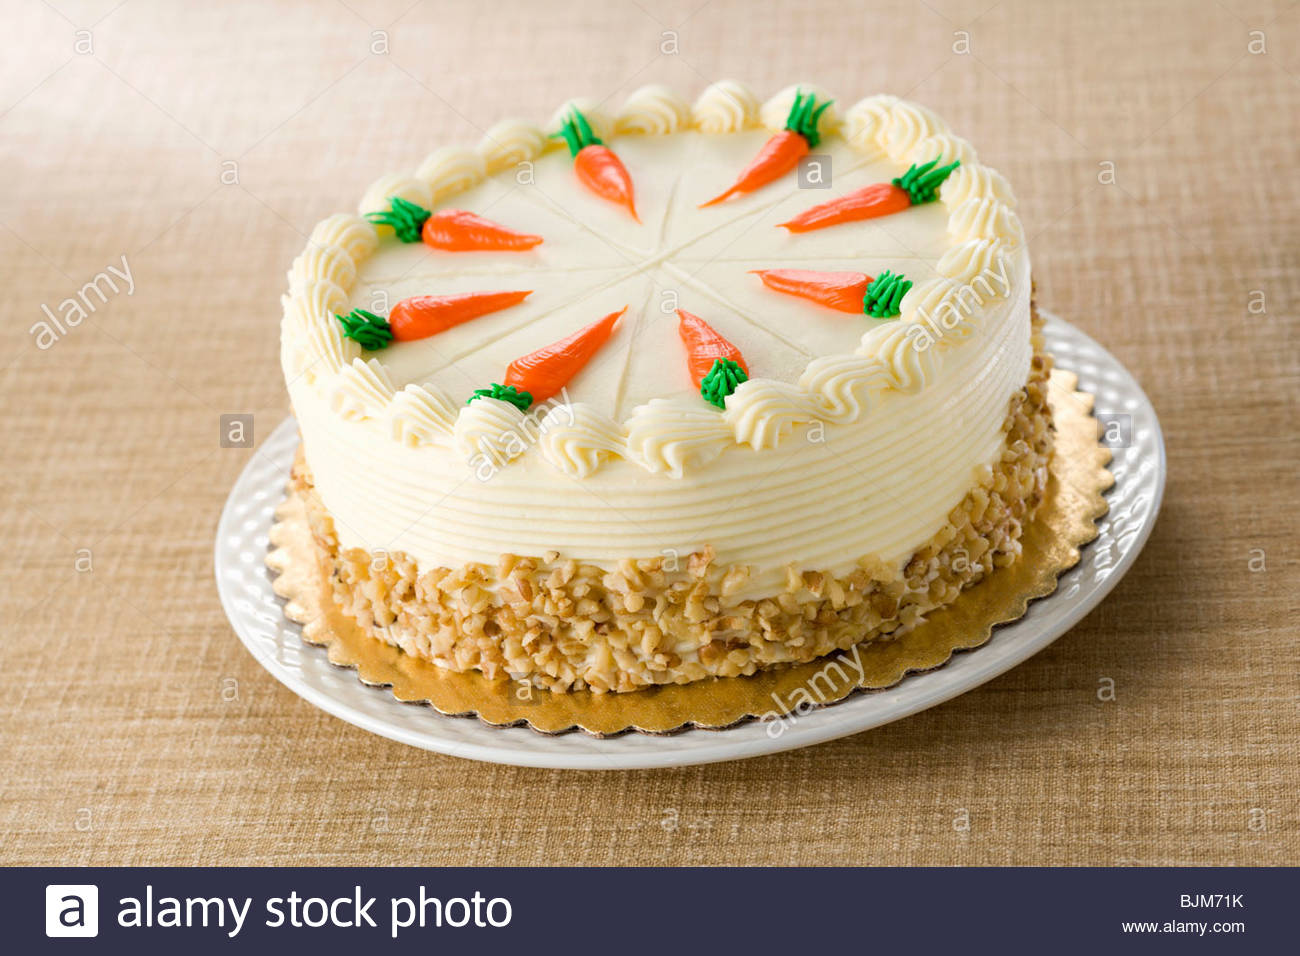 Whole Carrot Cake With Frosting Carrot Decoration Stock